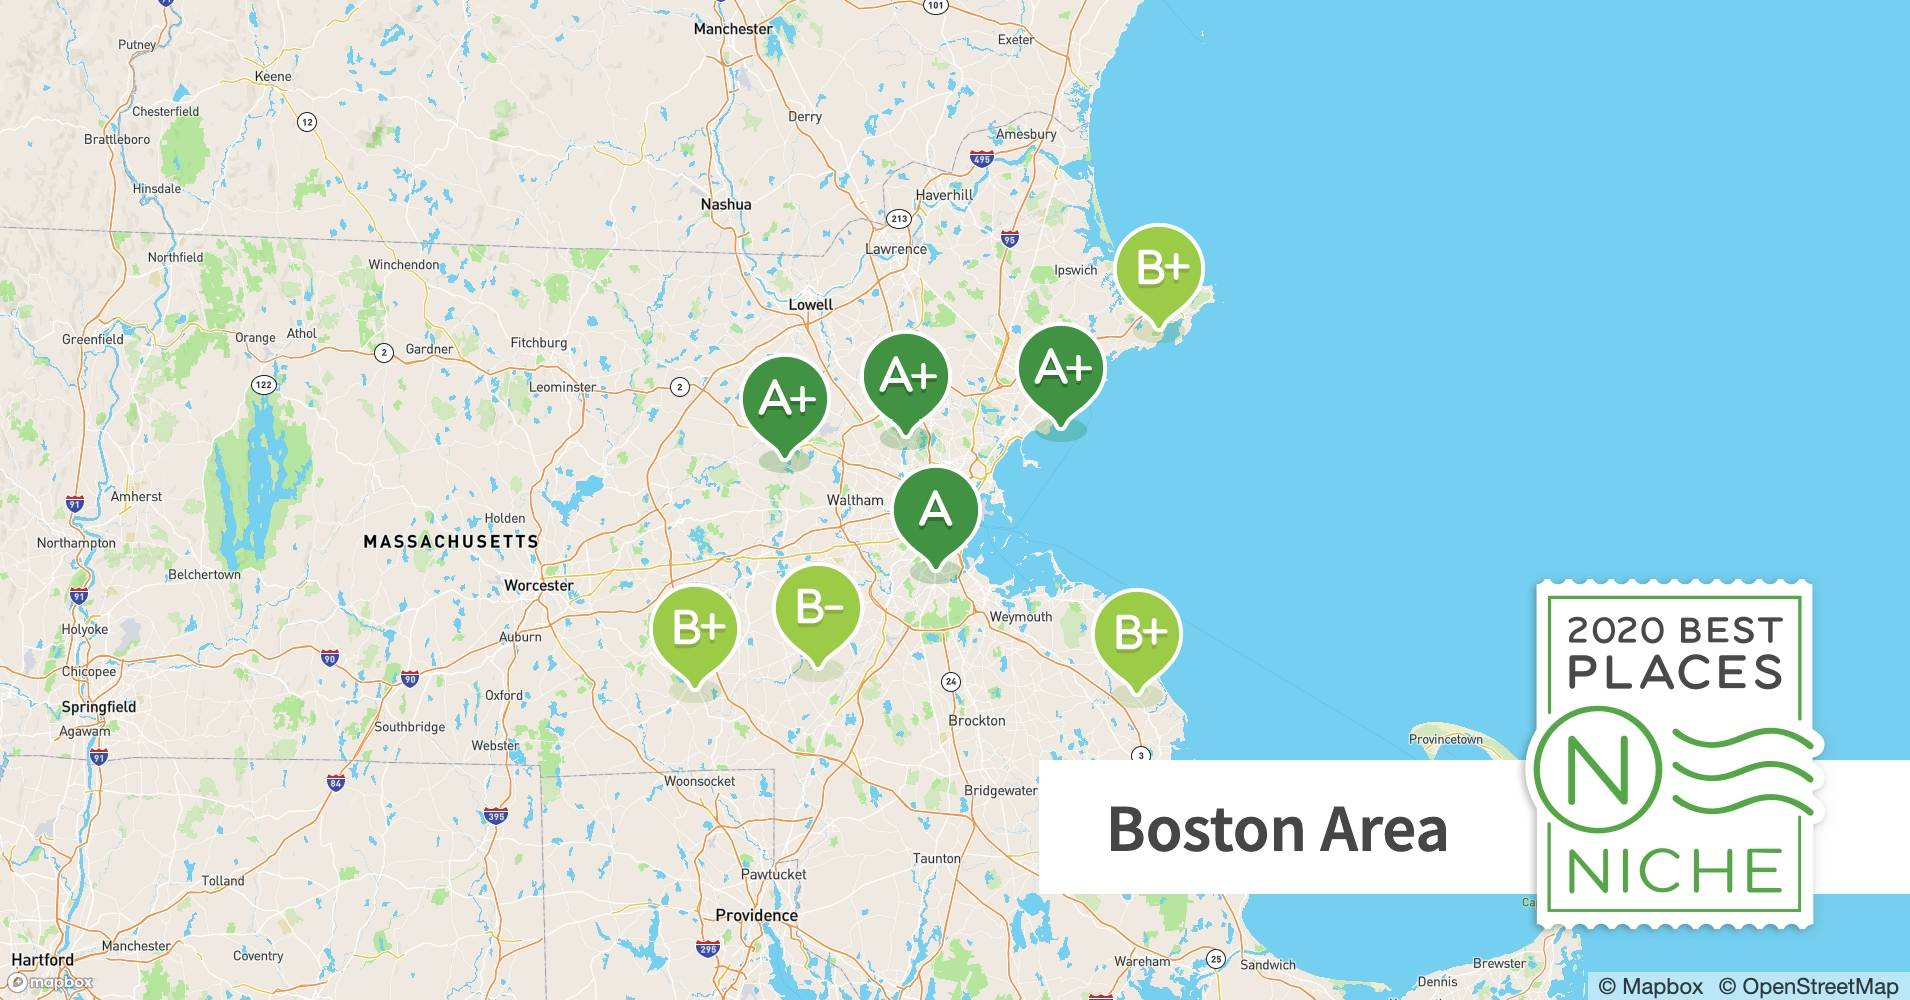 2020 Best Boston Area Neighborhoods For Young Professionals Niche